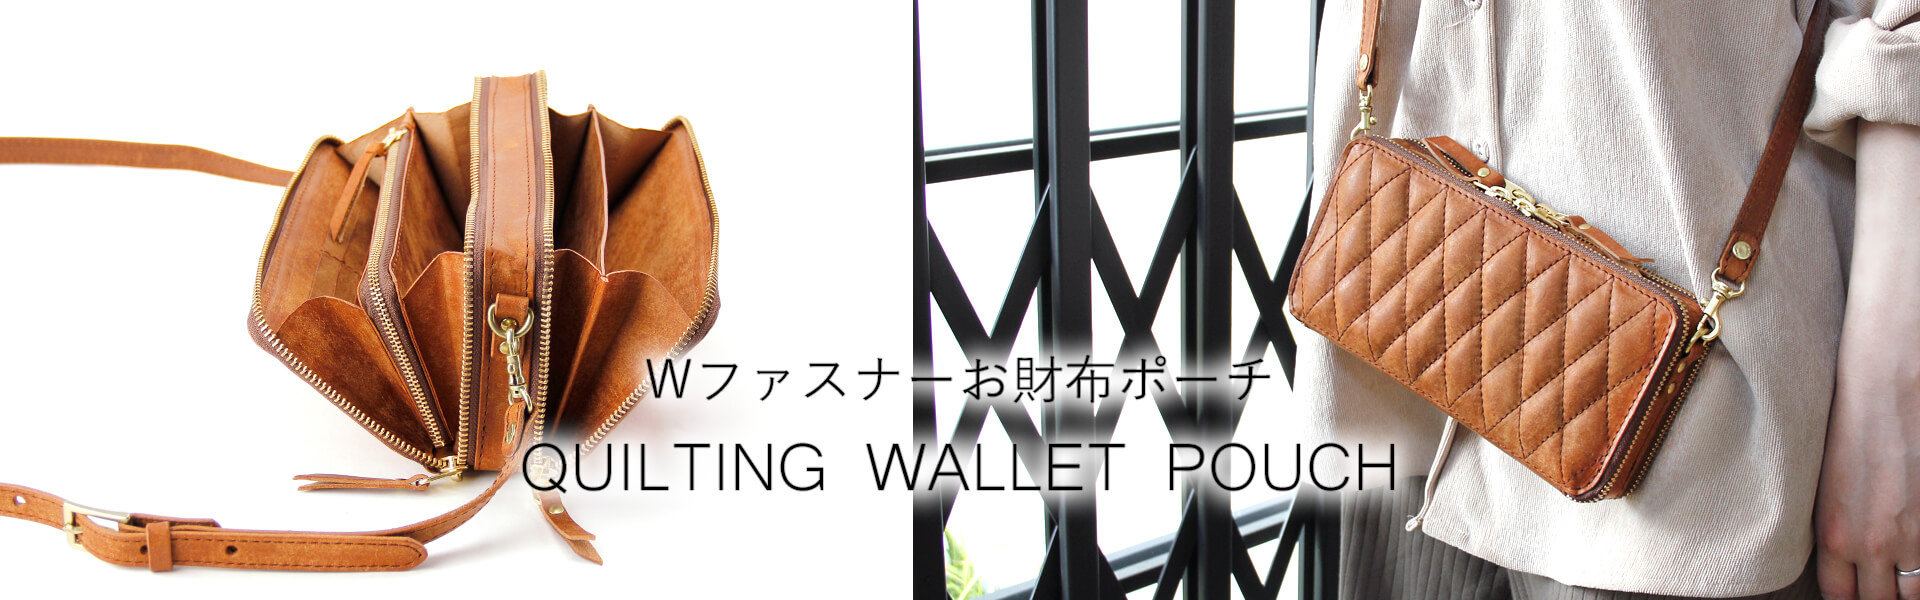 Pick Up / QUILTING_WALLET_POUCH